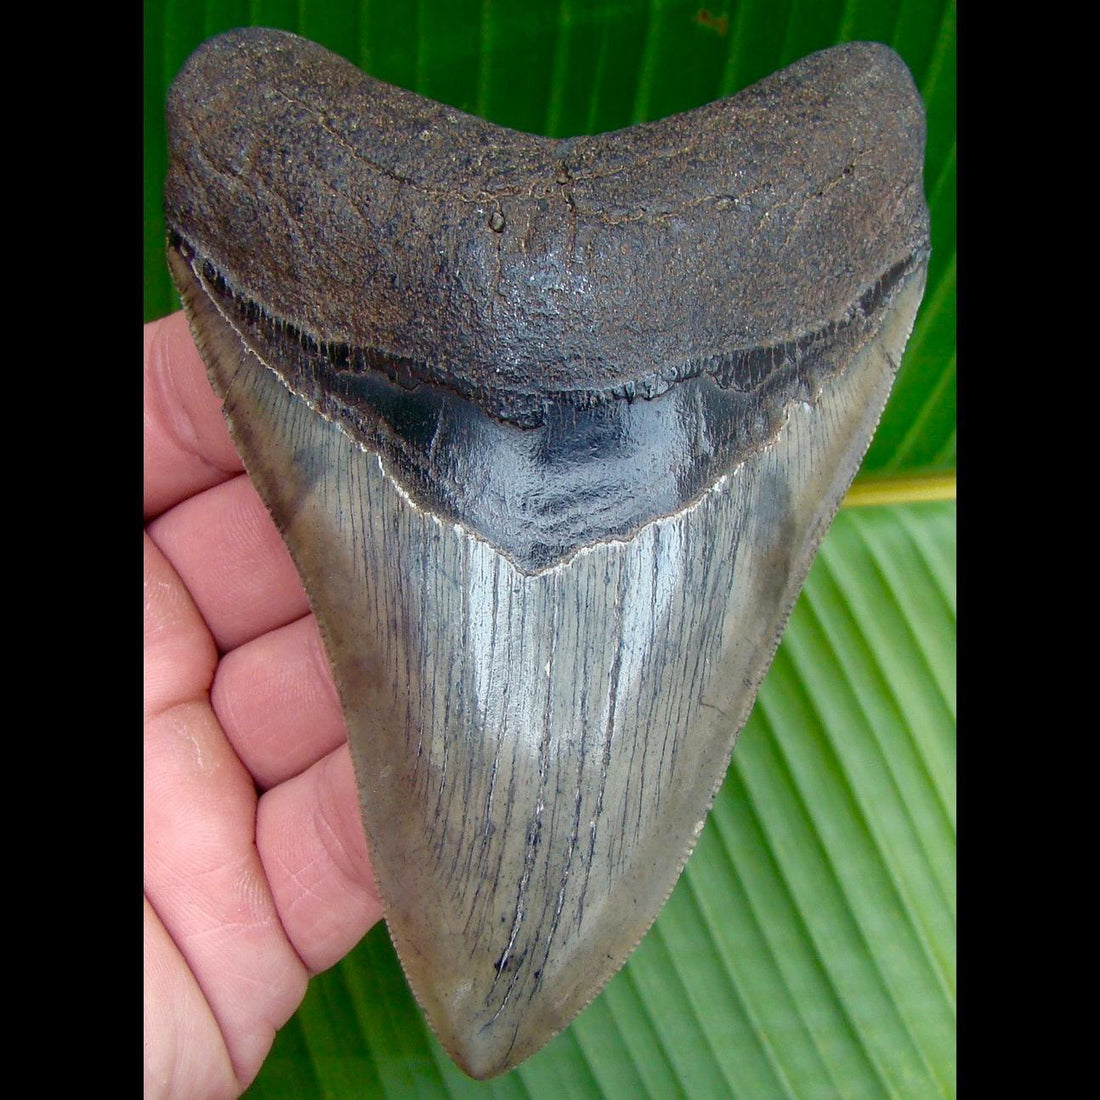 Megalodon Tooth 4 & 7/8 in. South Carolina Megalodon Shark Tooth